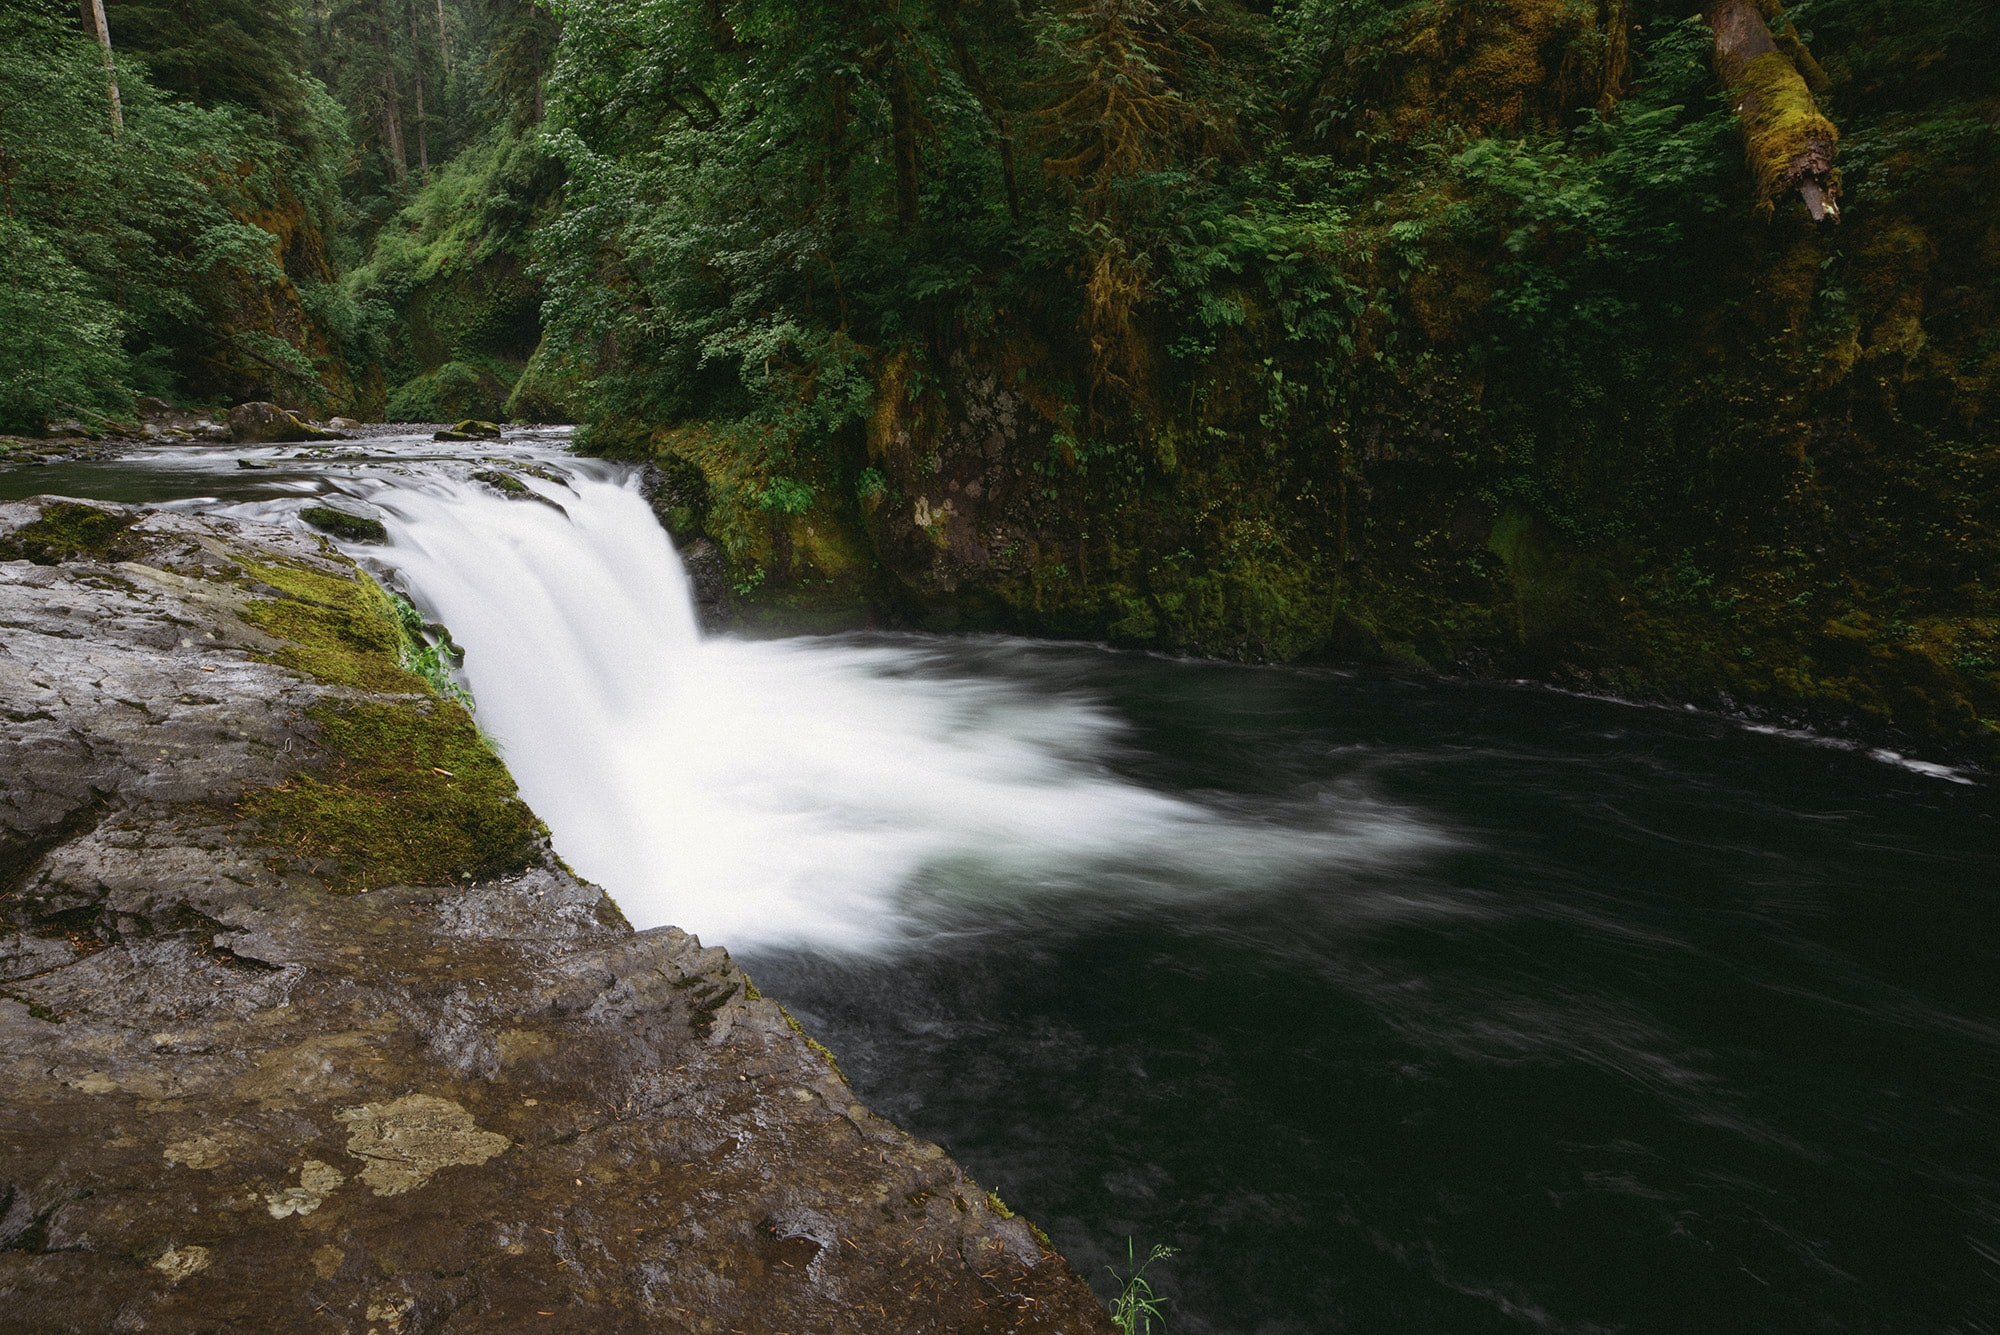 A low waterfall pouring into a river in a forest in Oregon